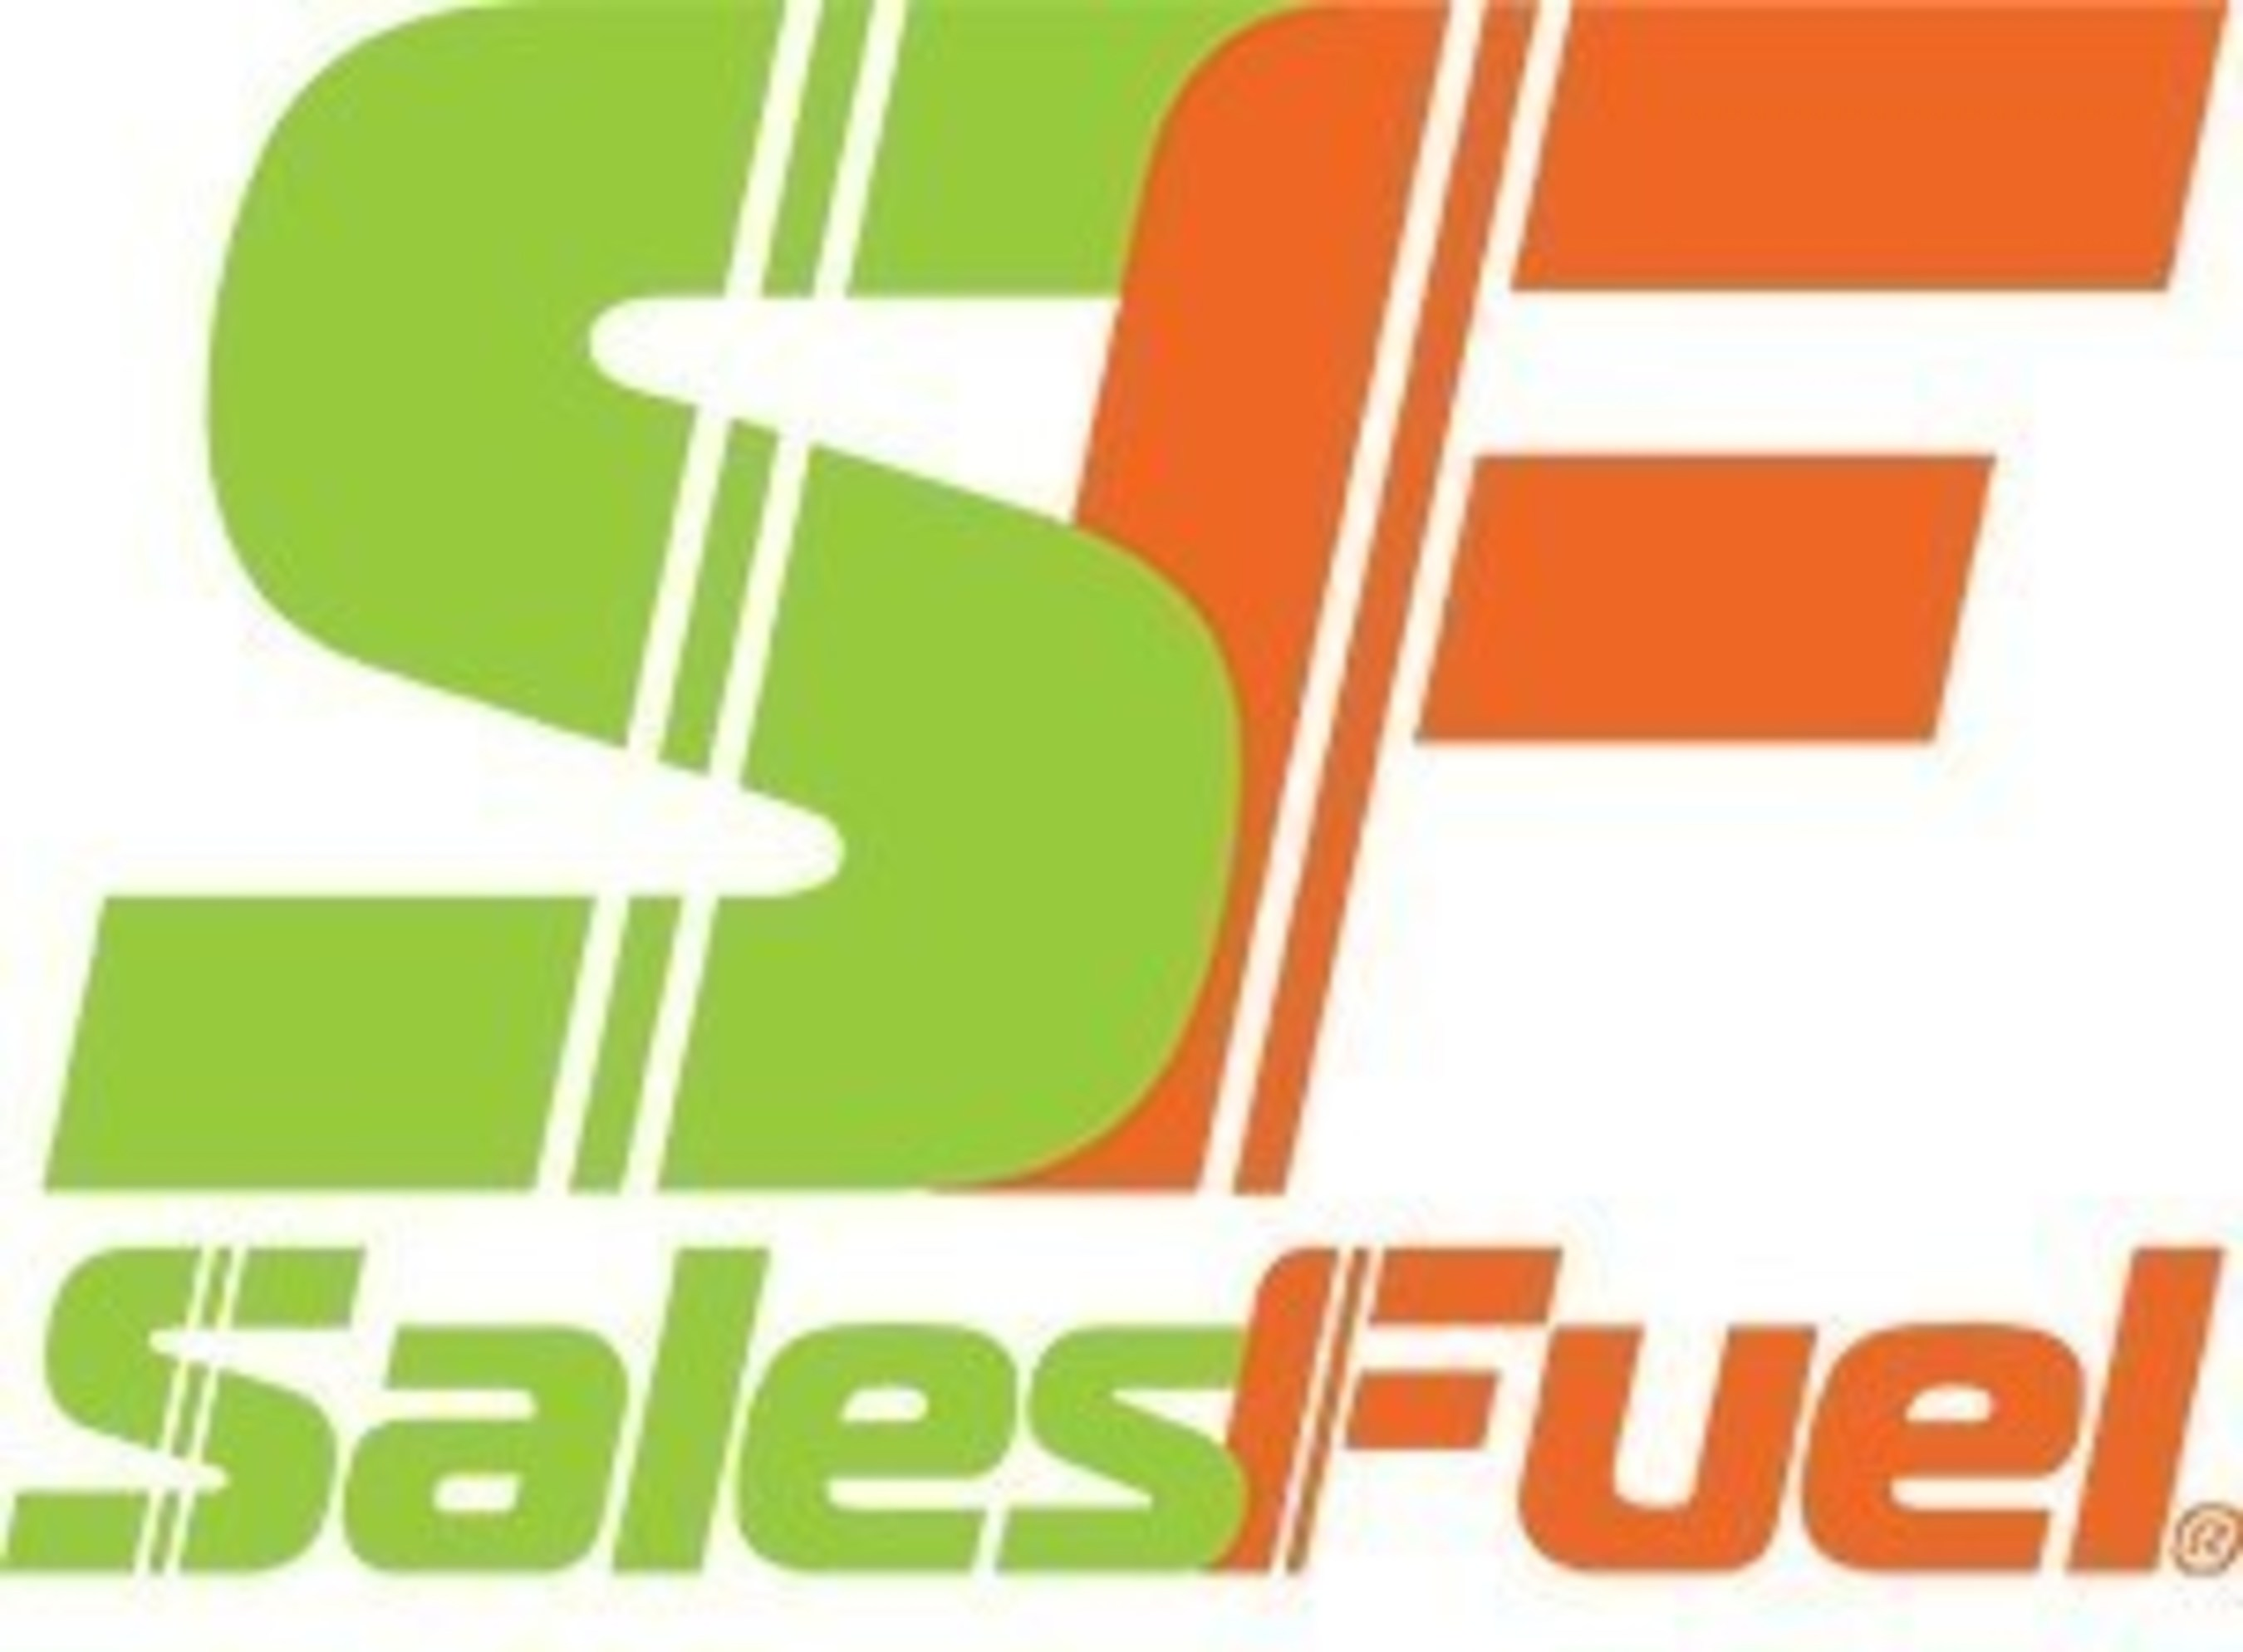 SalesFuel provides intelligence-driven sales enablement and management strategies